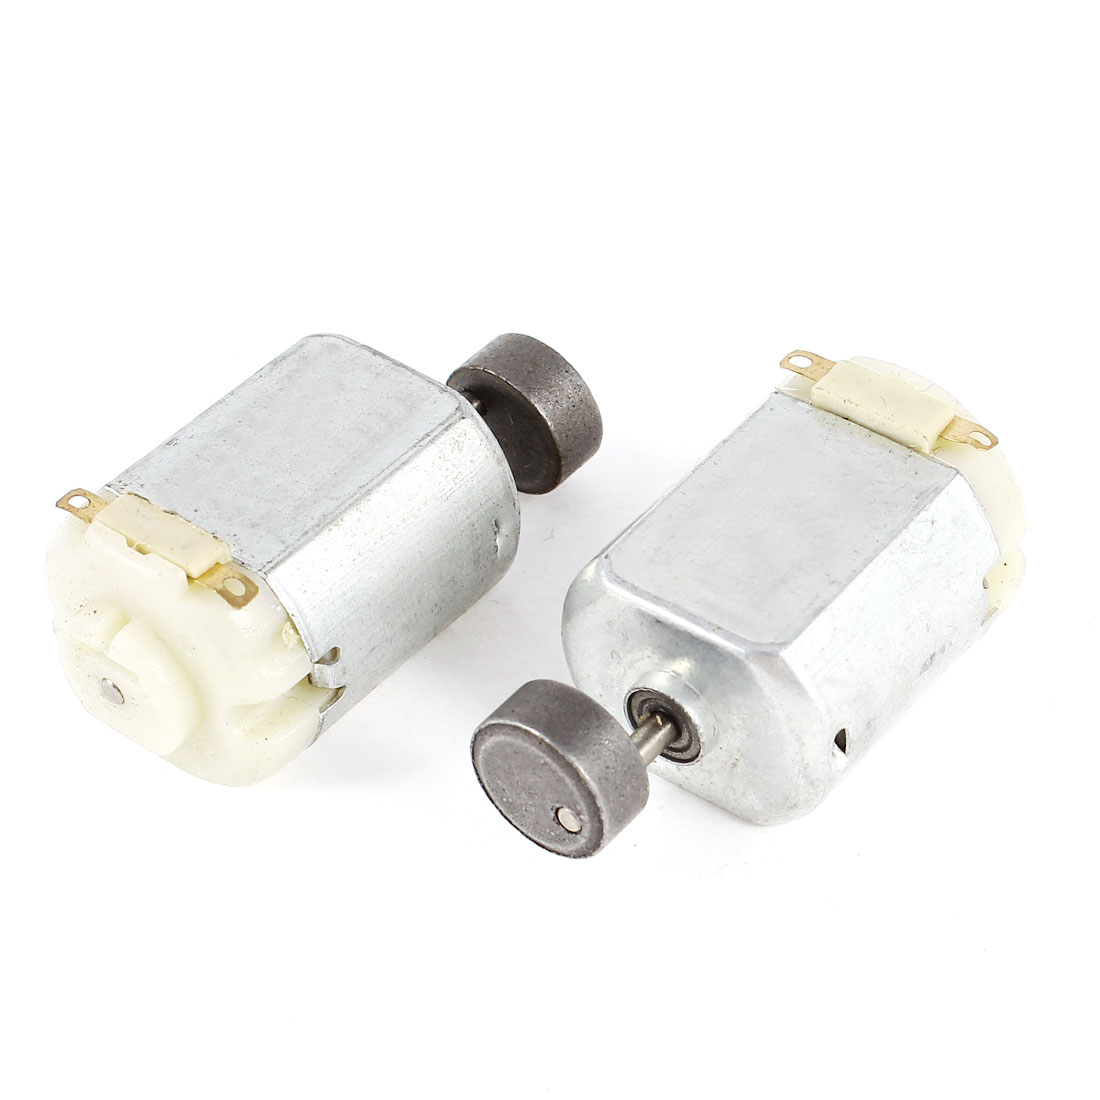 2 Pcs Mini Vibration Vibrating Electric Motor DC 3V 5200RPM for Toys Massagers